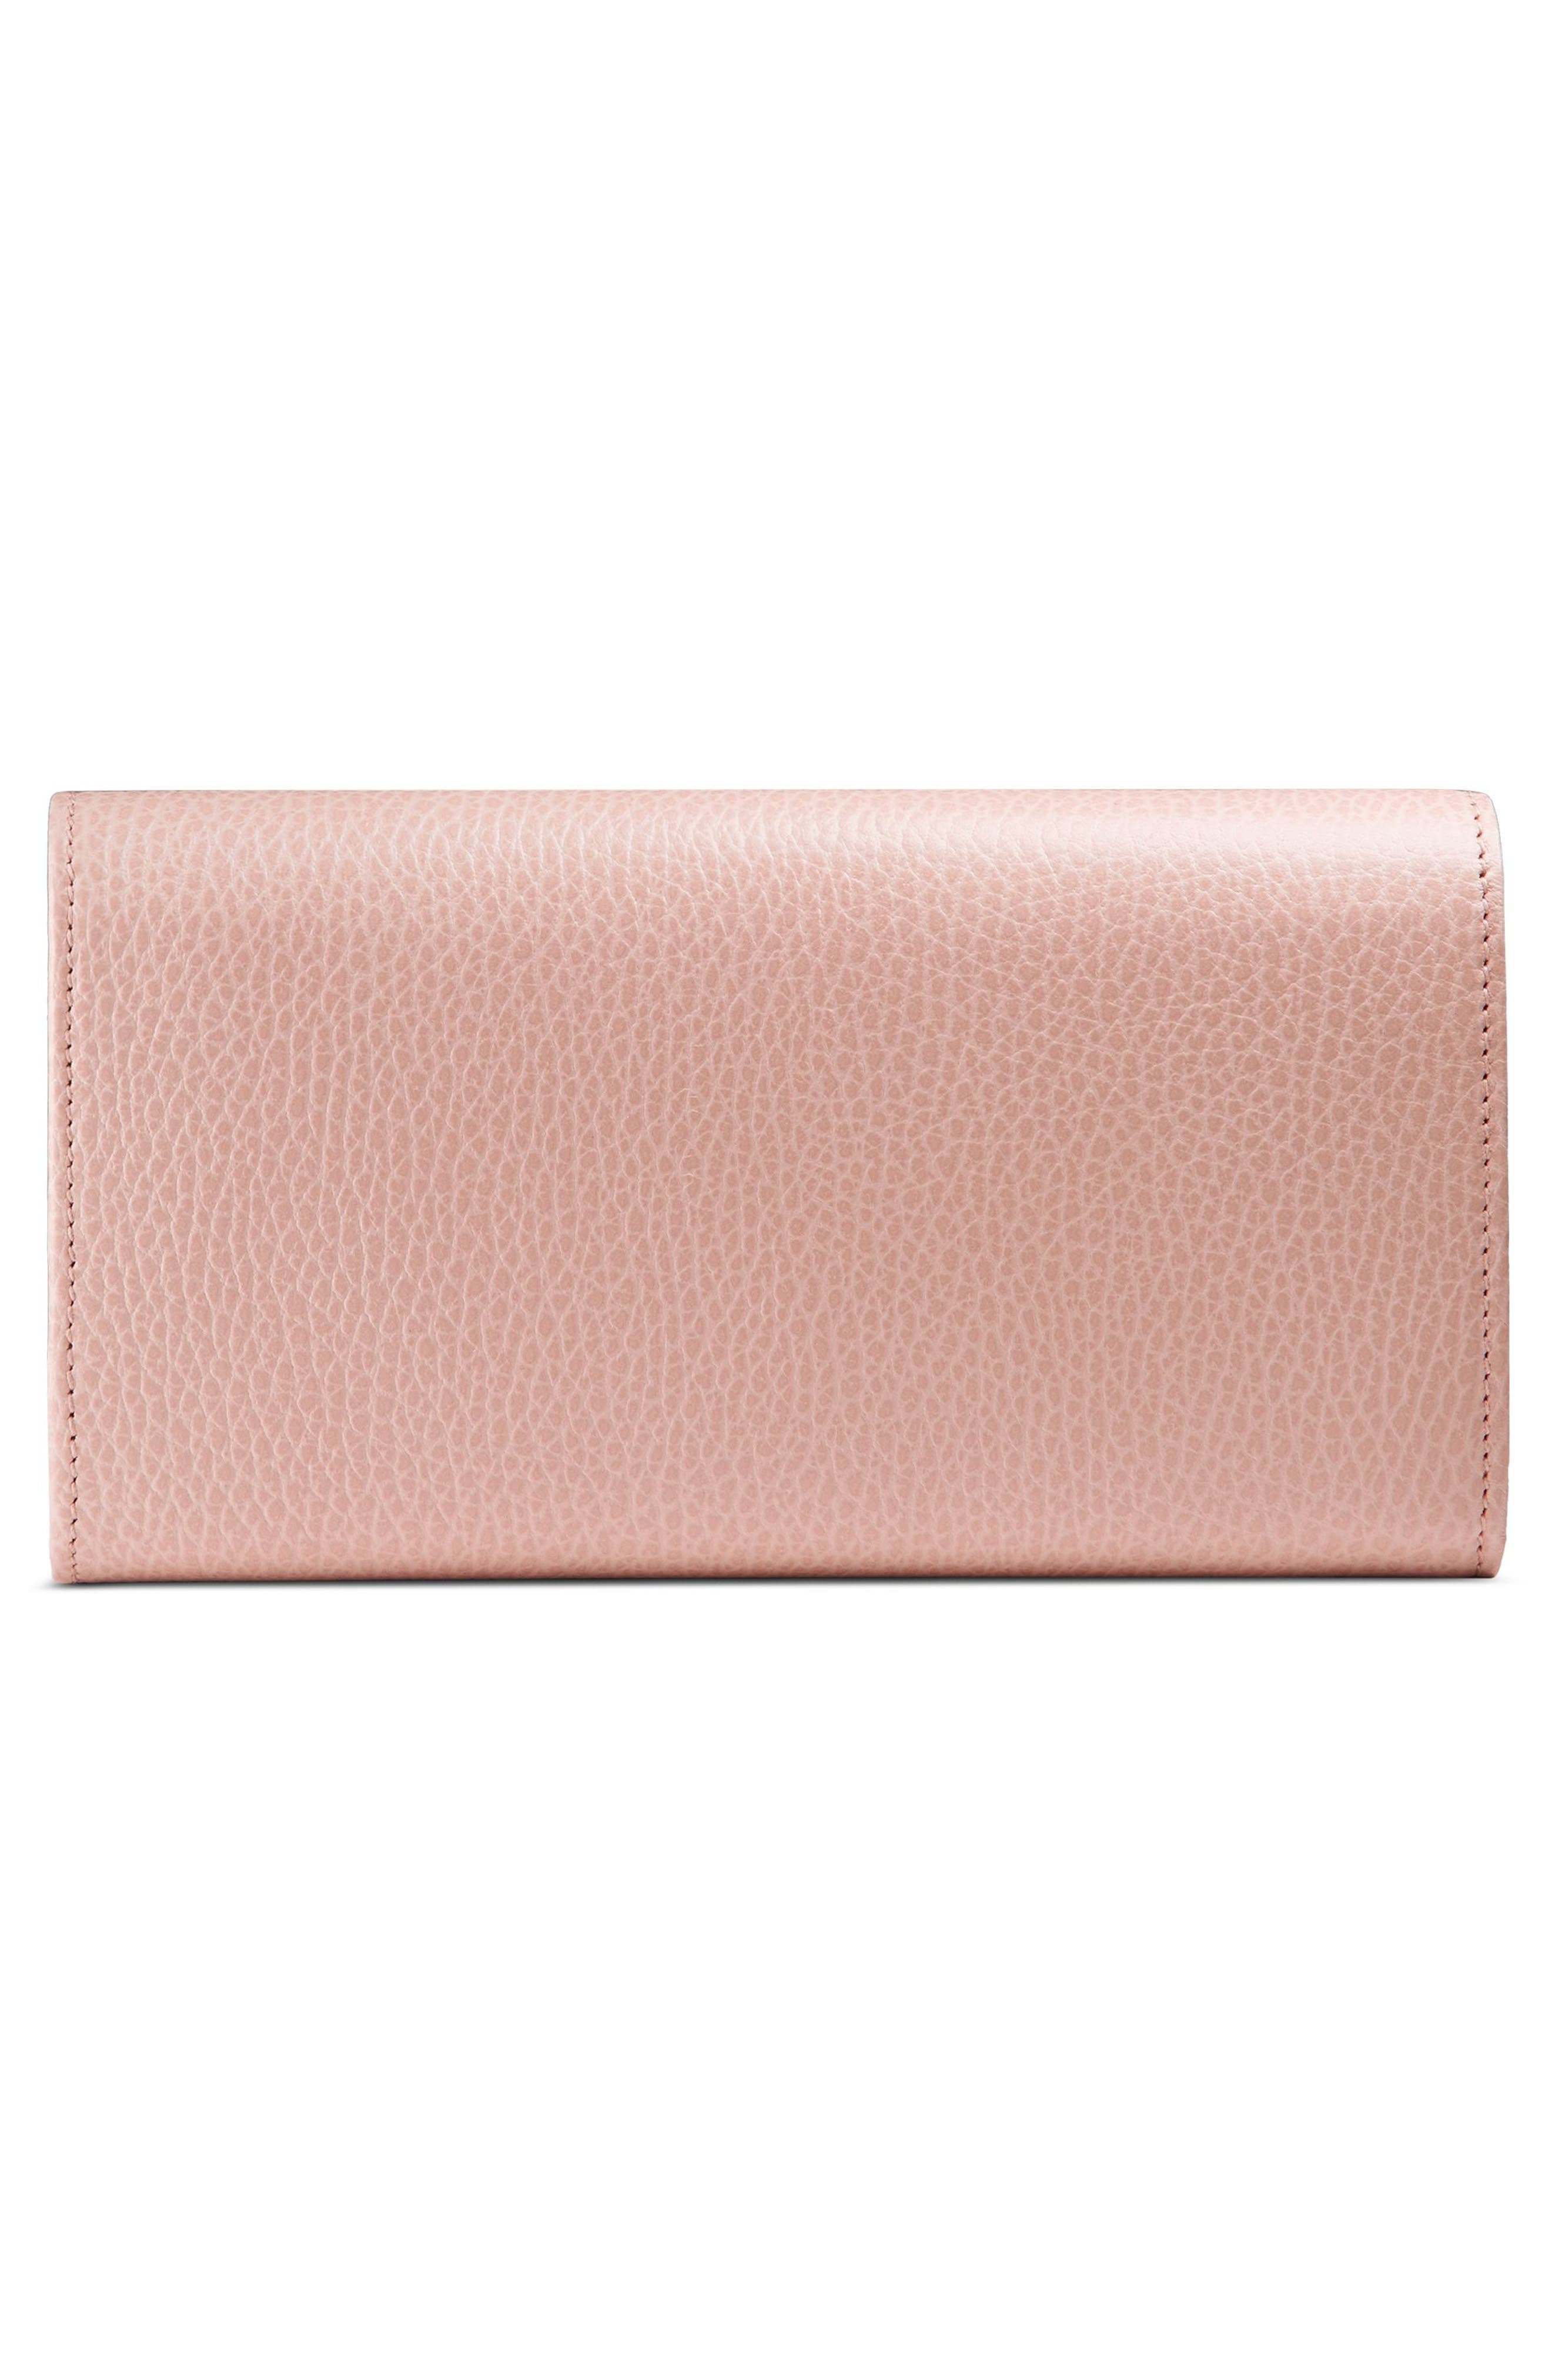 Farfalla Leather Continental Wallet,                             Alternate thumbnail 3, color,                             PERFECT PINK/ CRYSTAL